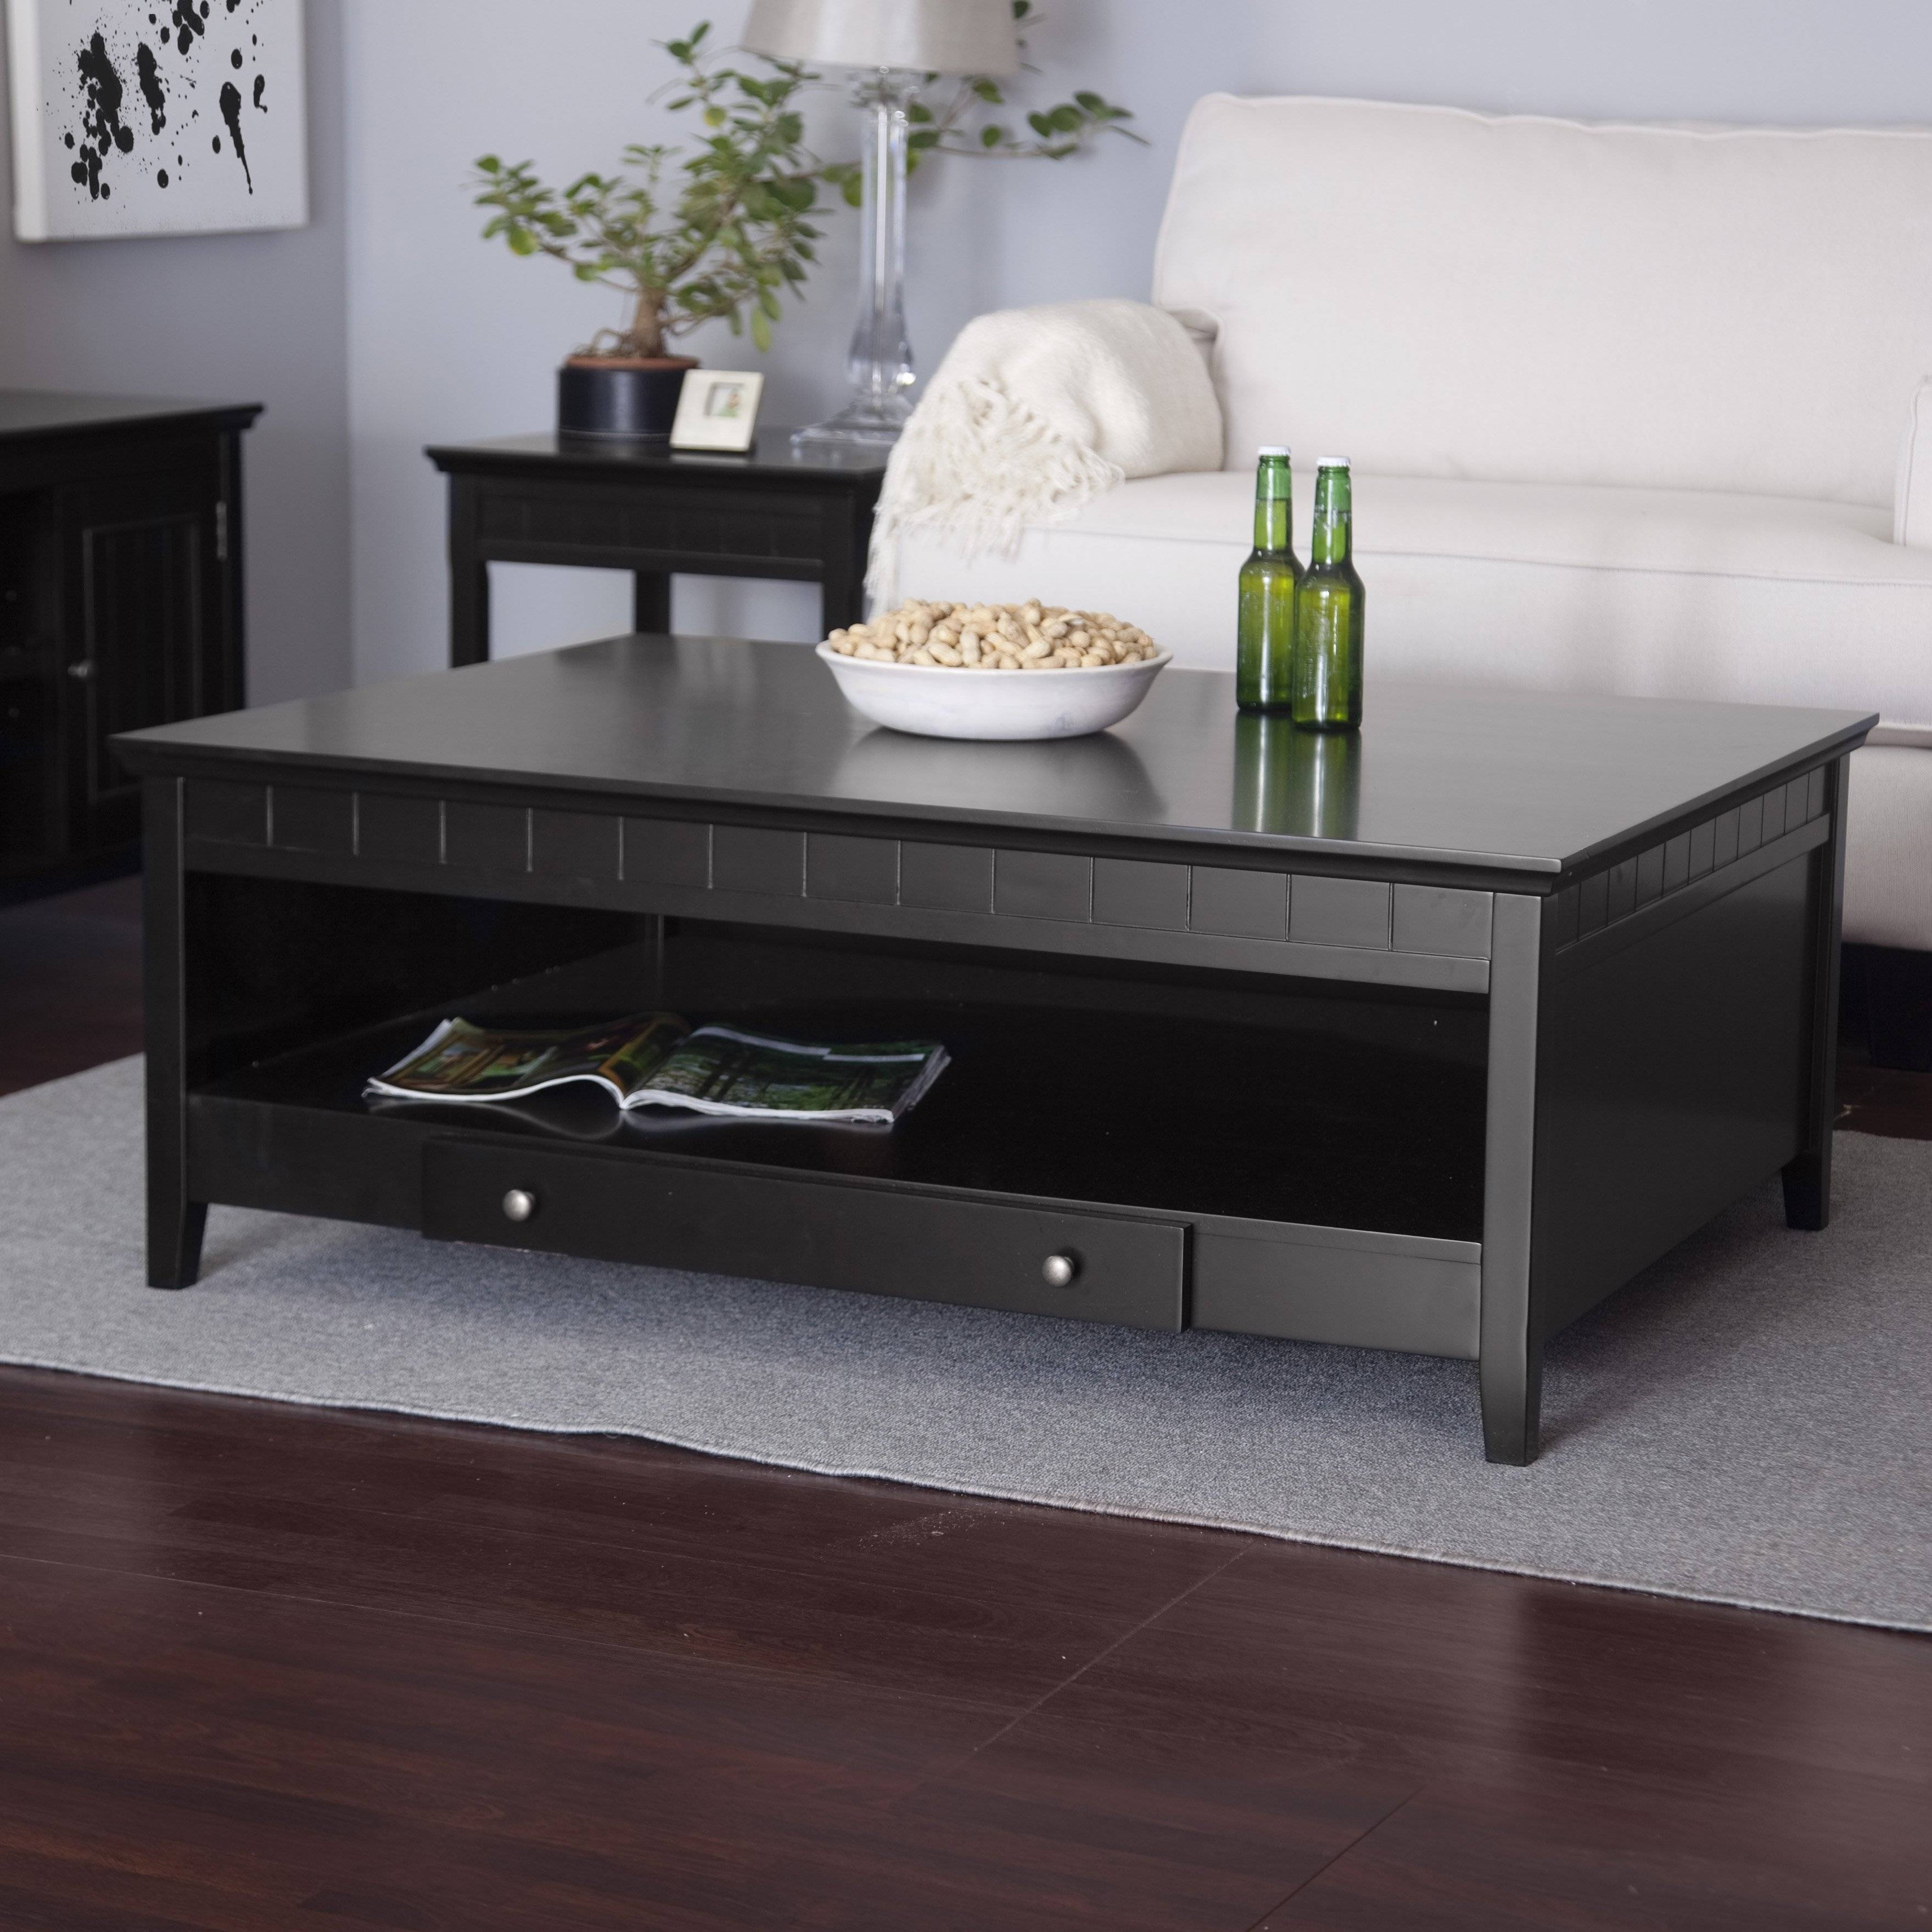 Coffee Tables: New Small Coffee Tables With Storage Design Ideas Within Small Coffee Tables With Storage (View 20 of 30)